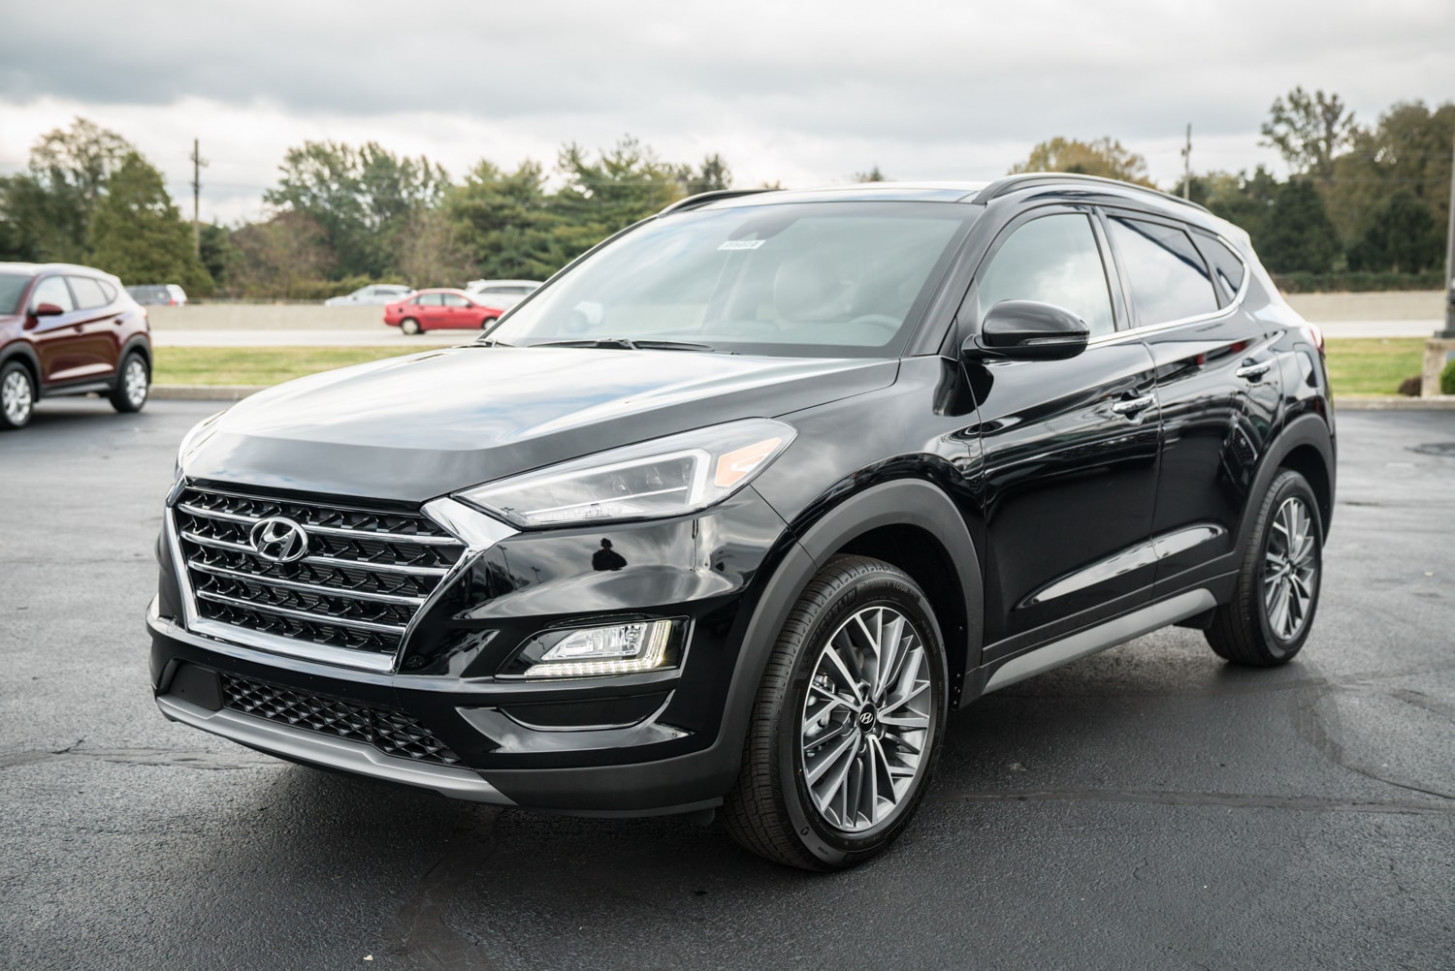 New 11 Hyundai Tucson Ultimate For Sale in Springfield MO H11 |  Springfield New Hyundai For Sale KM11J11AL11LU13119211 - 2020 hyundai ultimate for sale